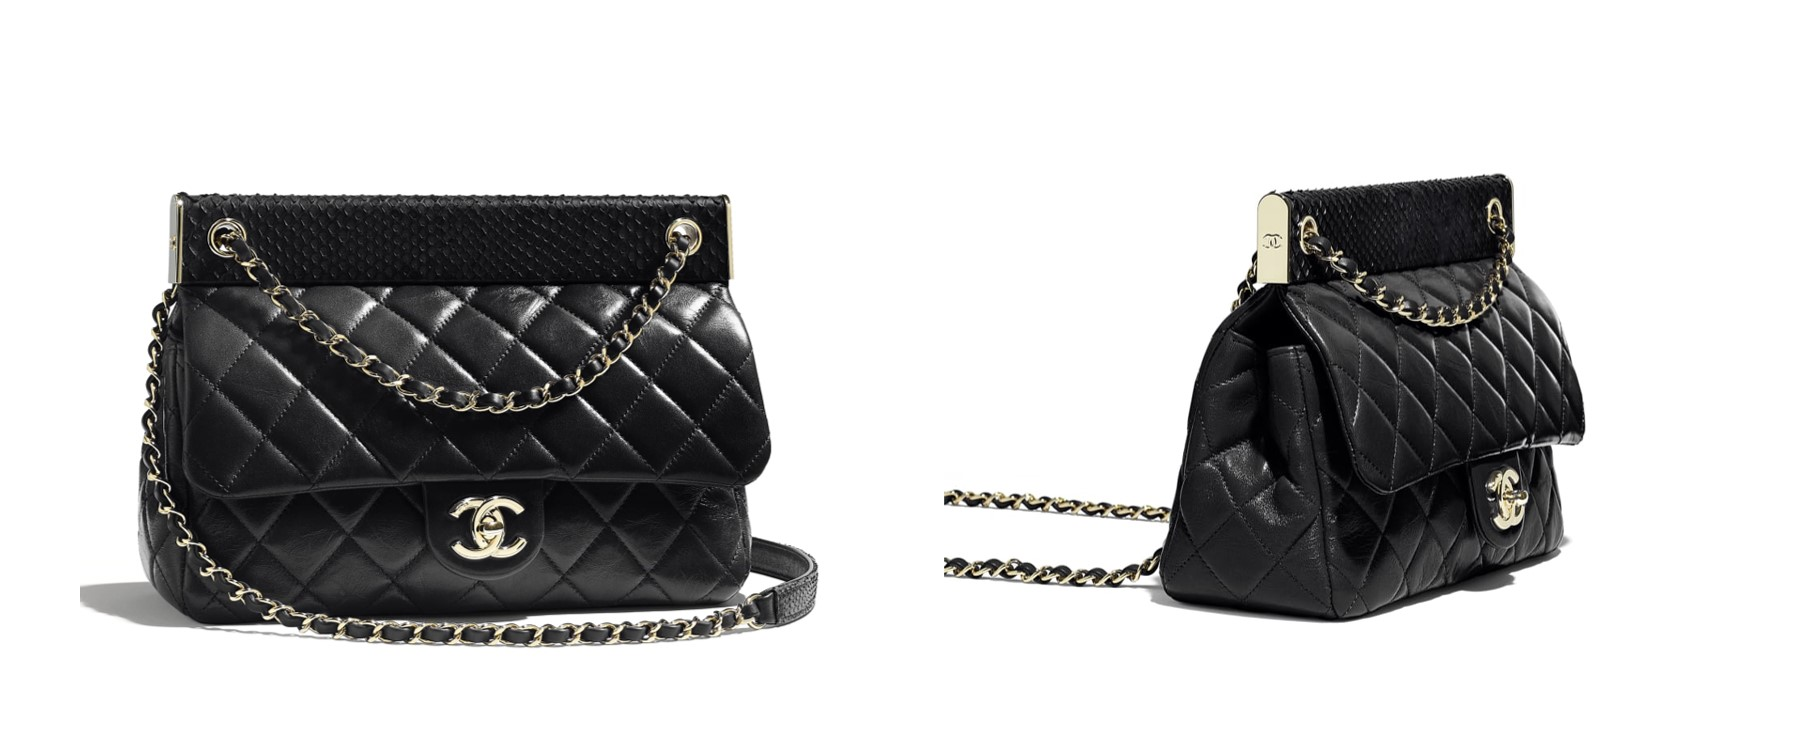 10 Best Chanel Bags To Buy This Season Chic Journal Blog